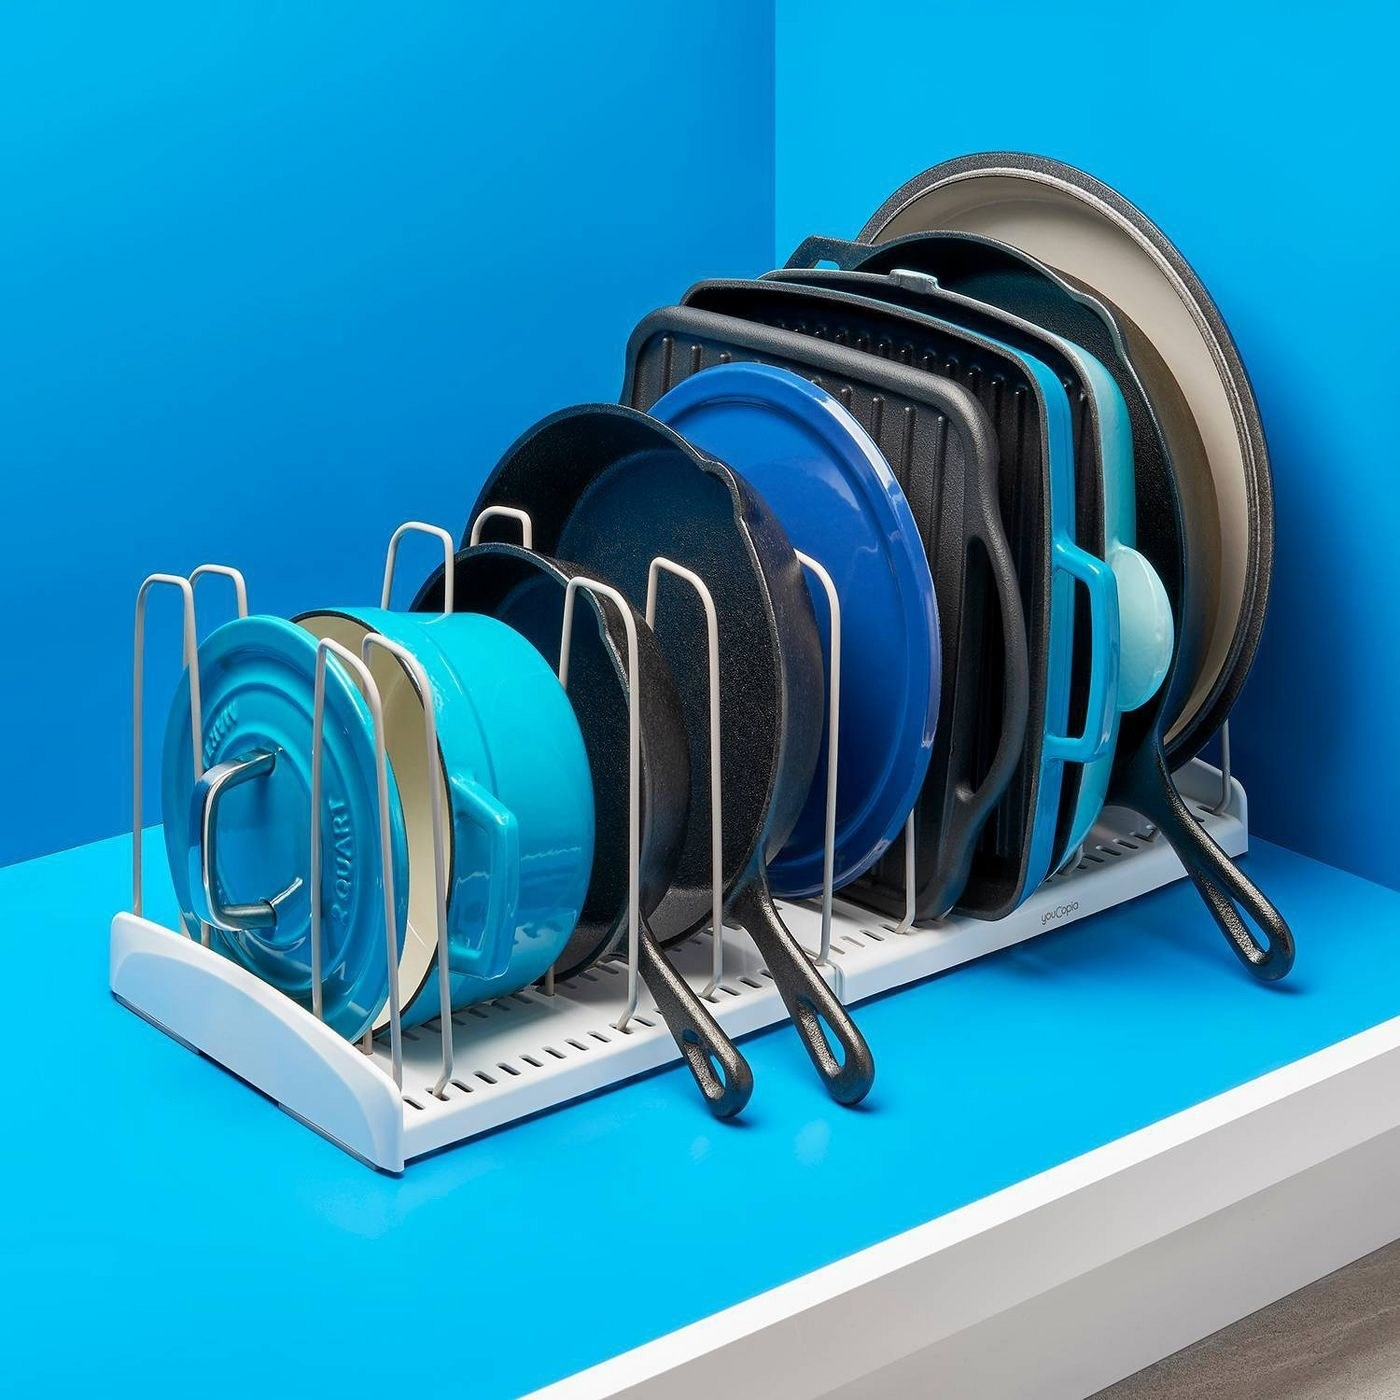 expandable cookware rack filled with various cookware and bakeware lying sideways